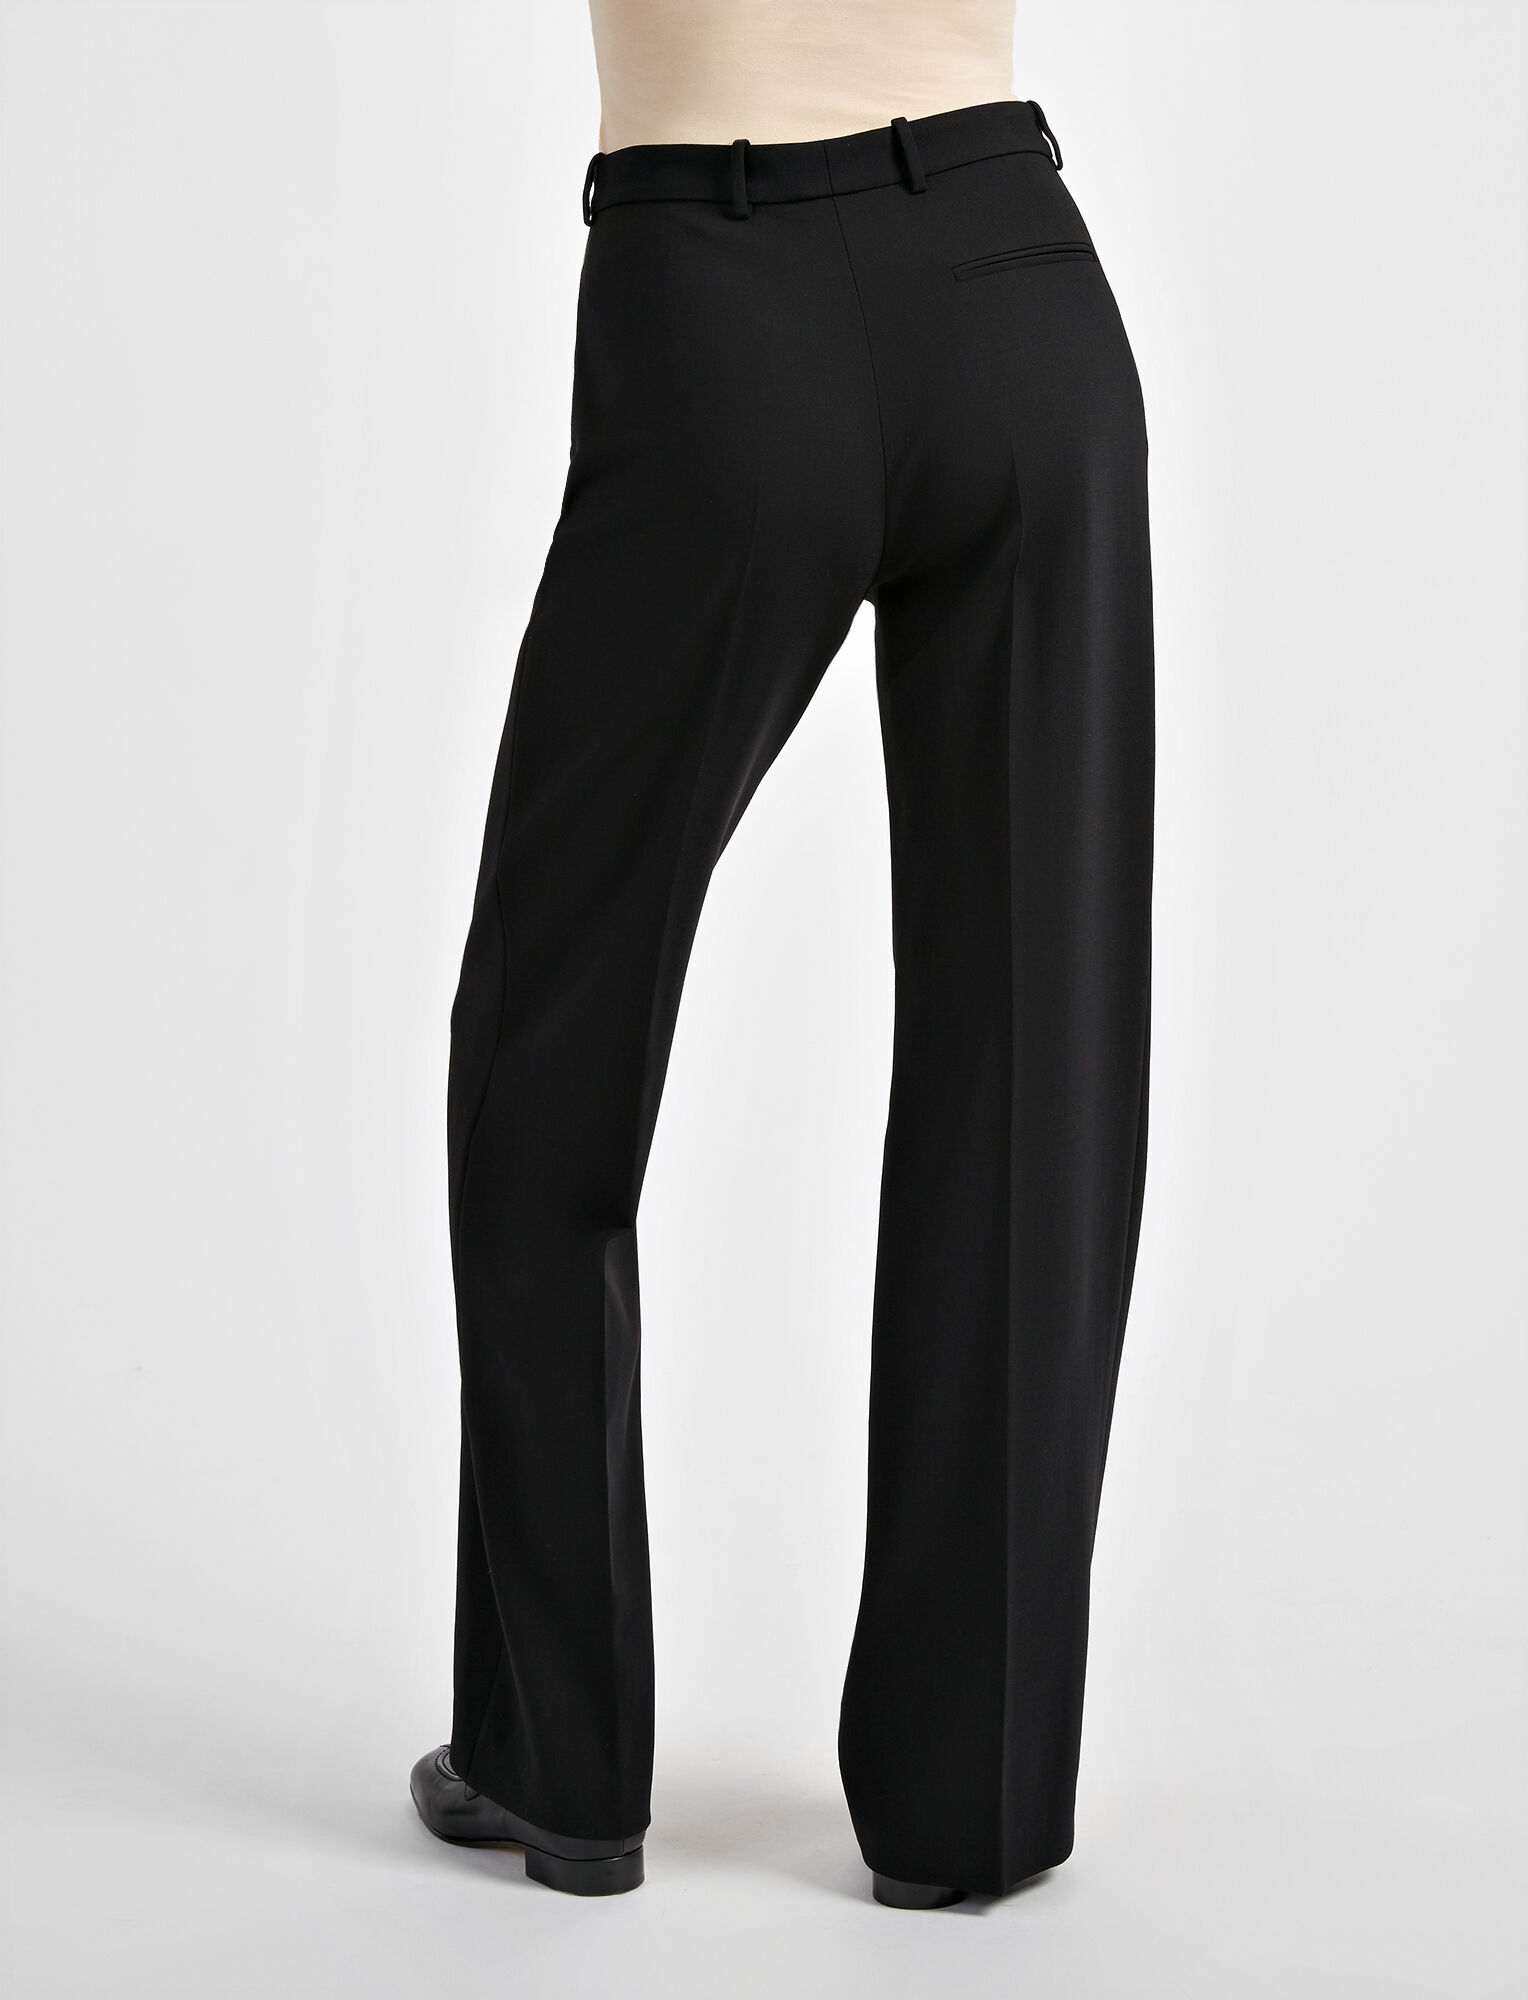 Joseph, Stretch Wool Ferguson Trouser, in BLACK